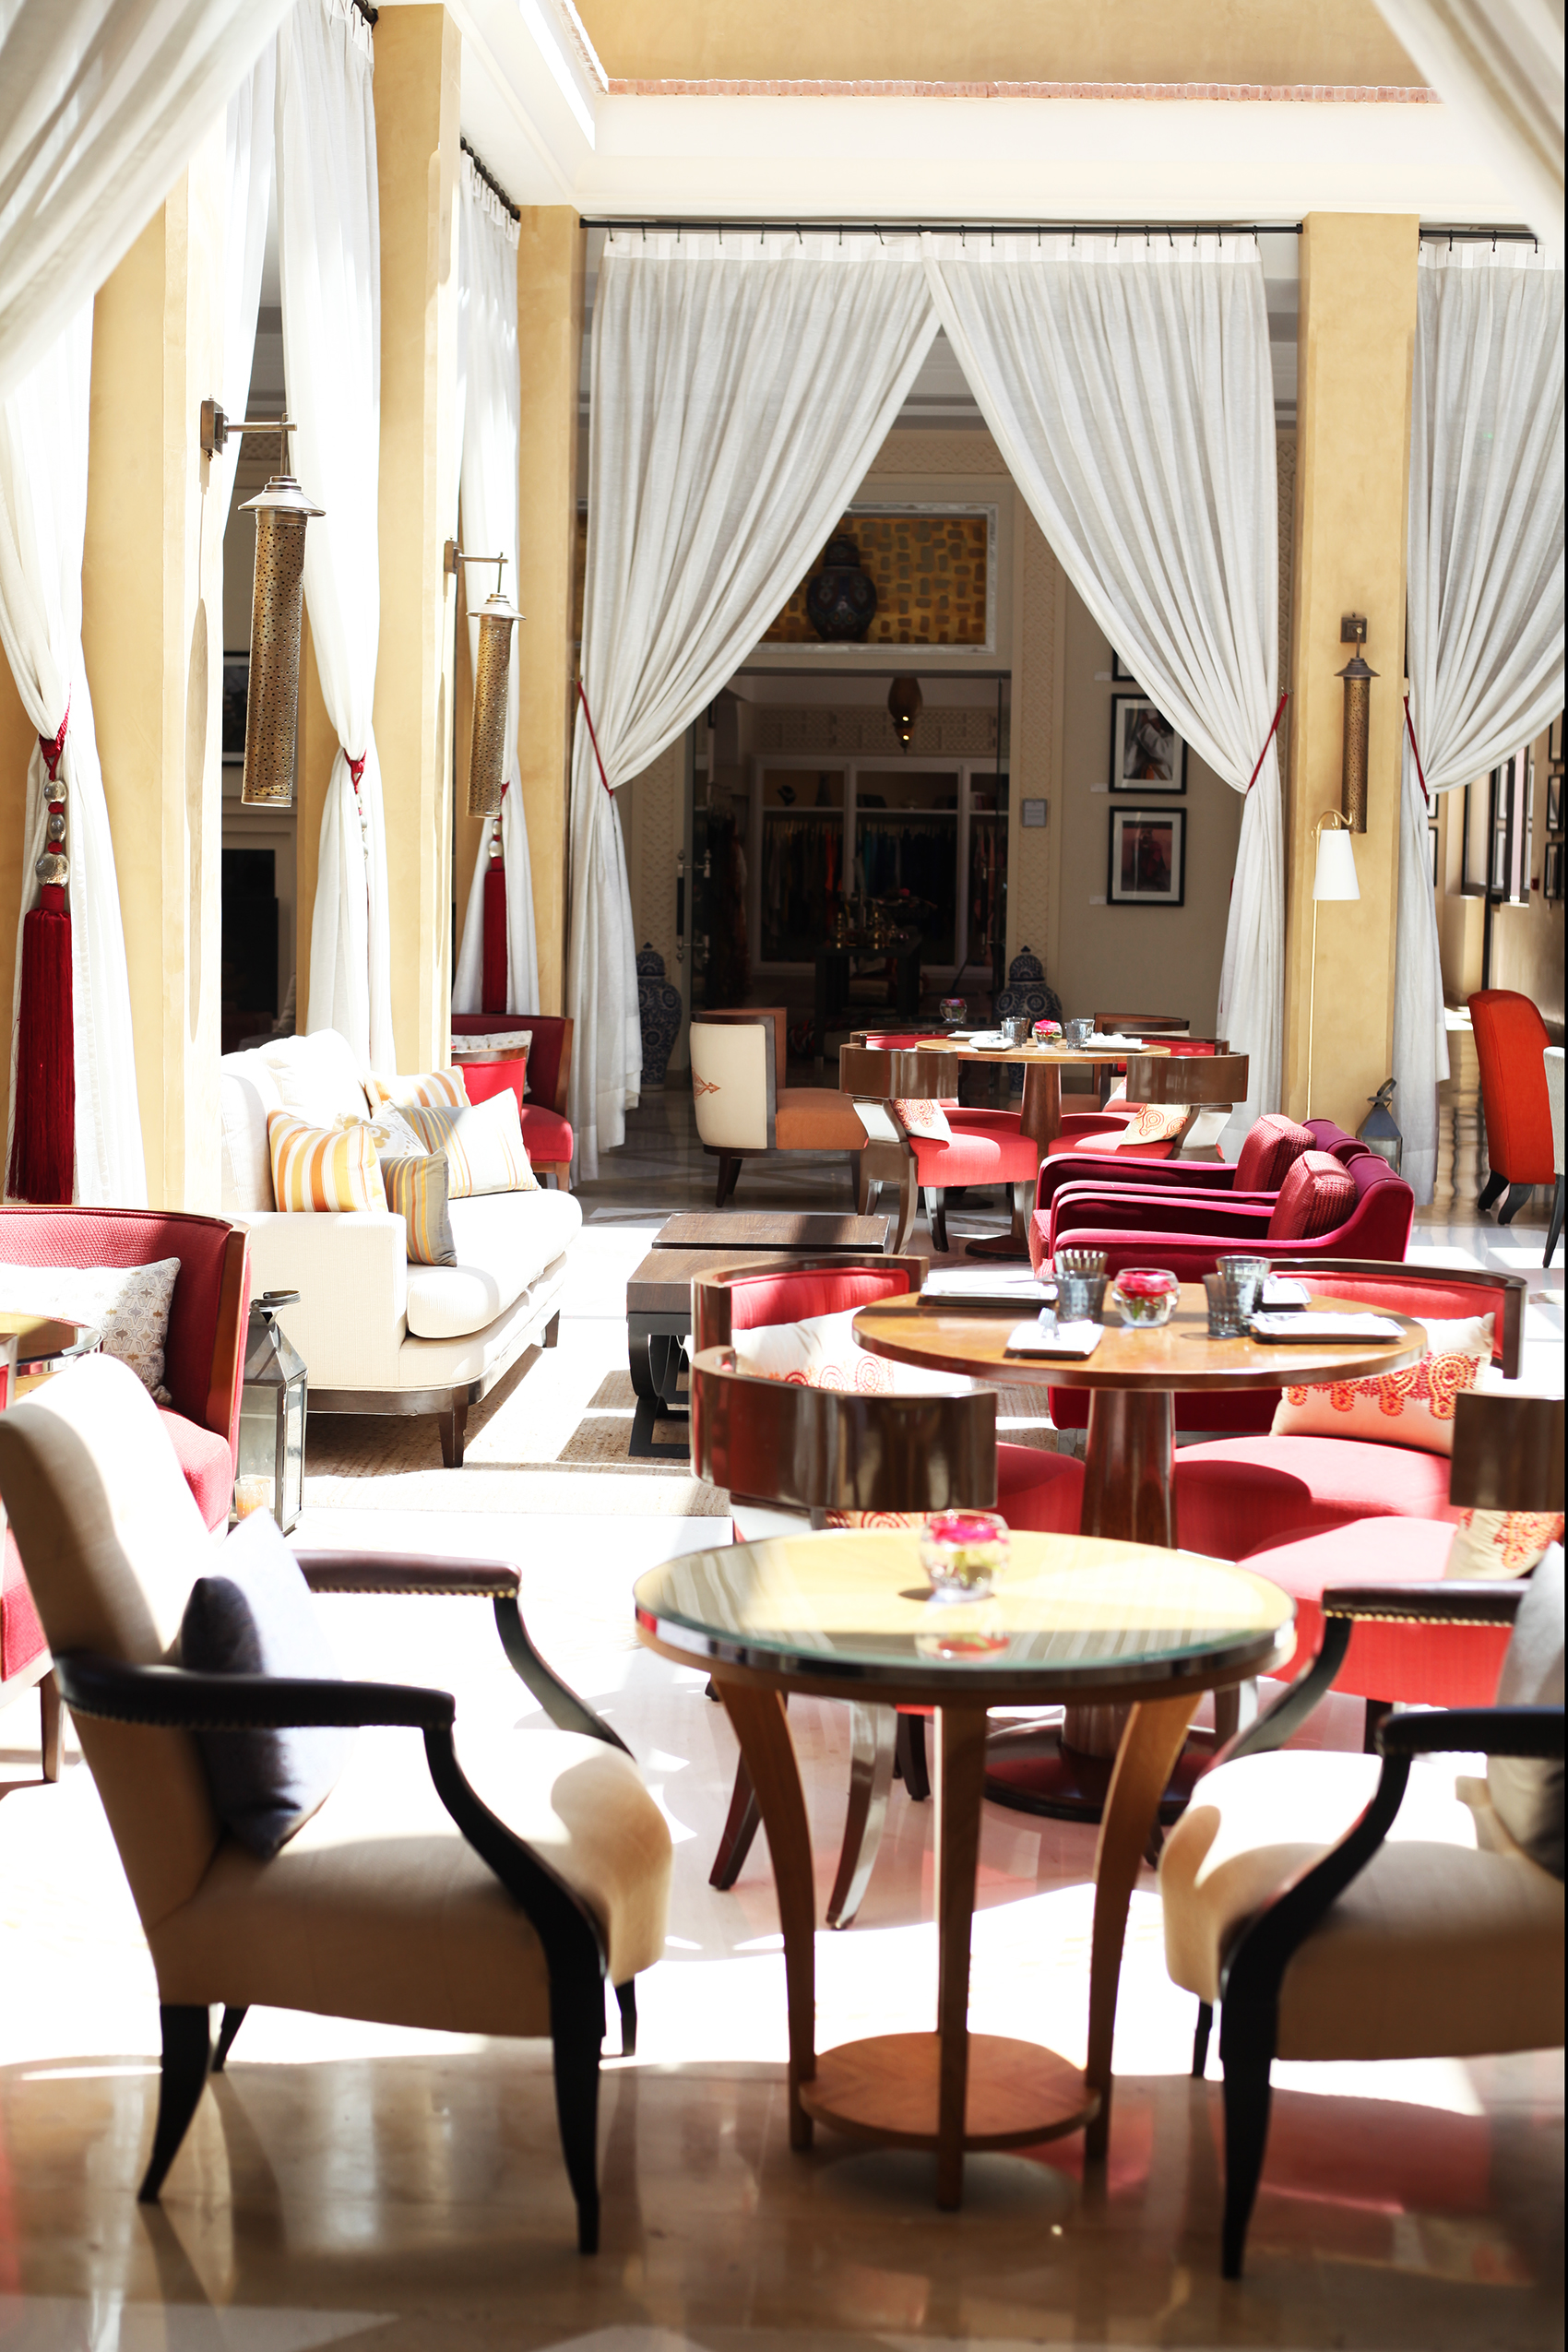 four-seasons-boubouteatime-review-marrakech